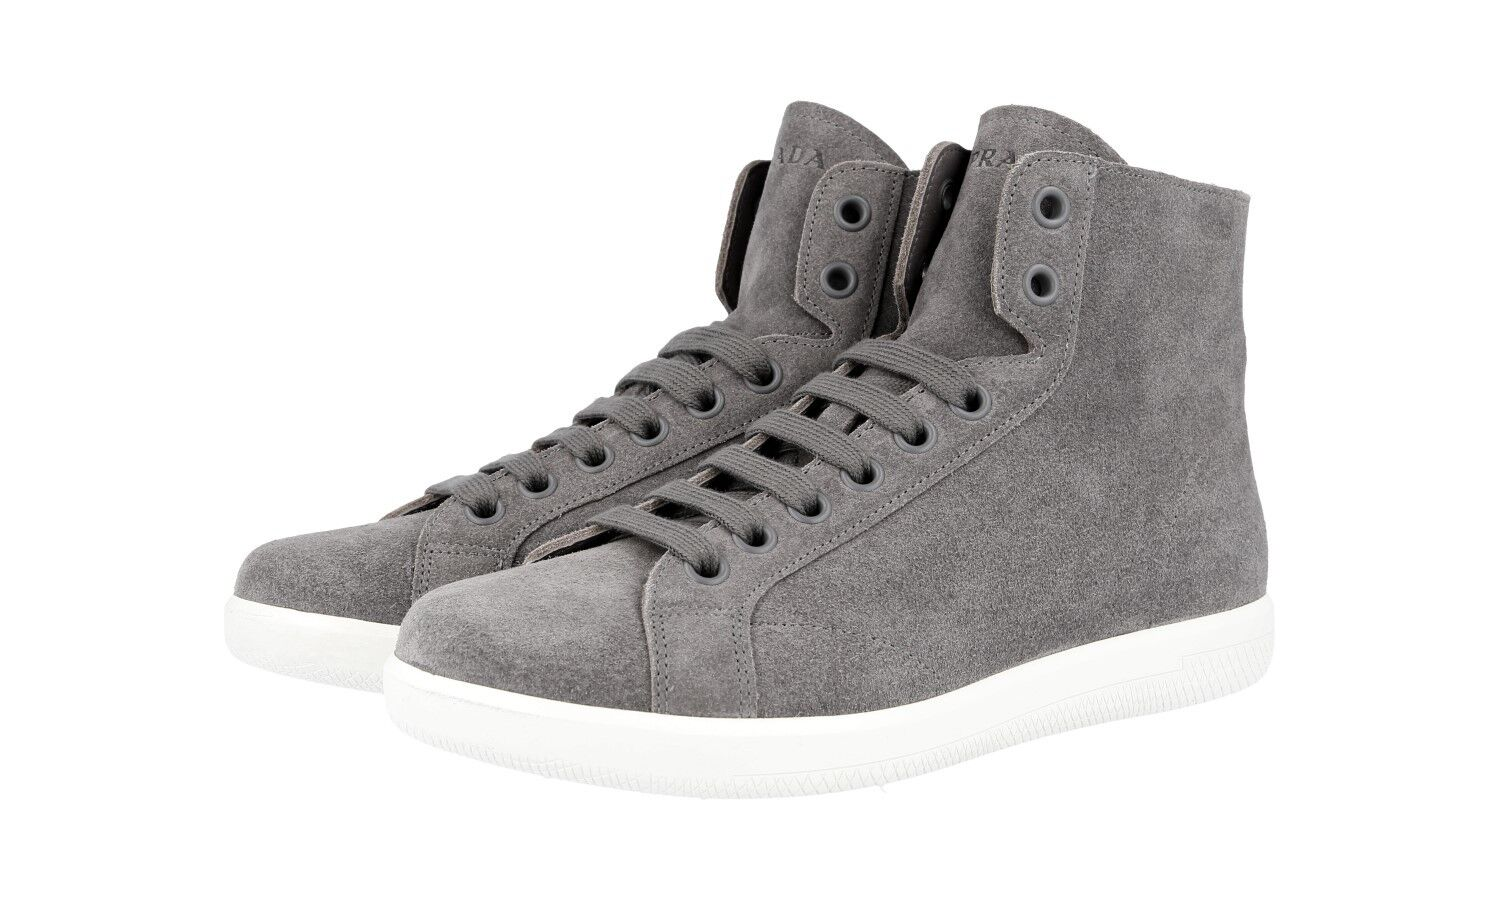 LUXUS PRADA HIGH TOP Turnschuhe SCHUHE 4T3149 GRAU WILDLEDER NEU NEW 6,5 40,5 41